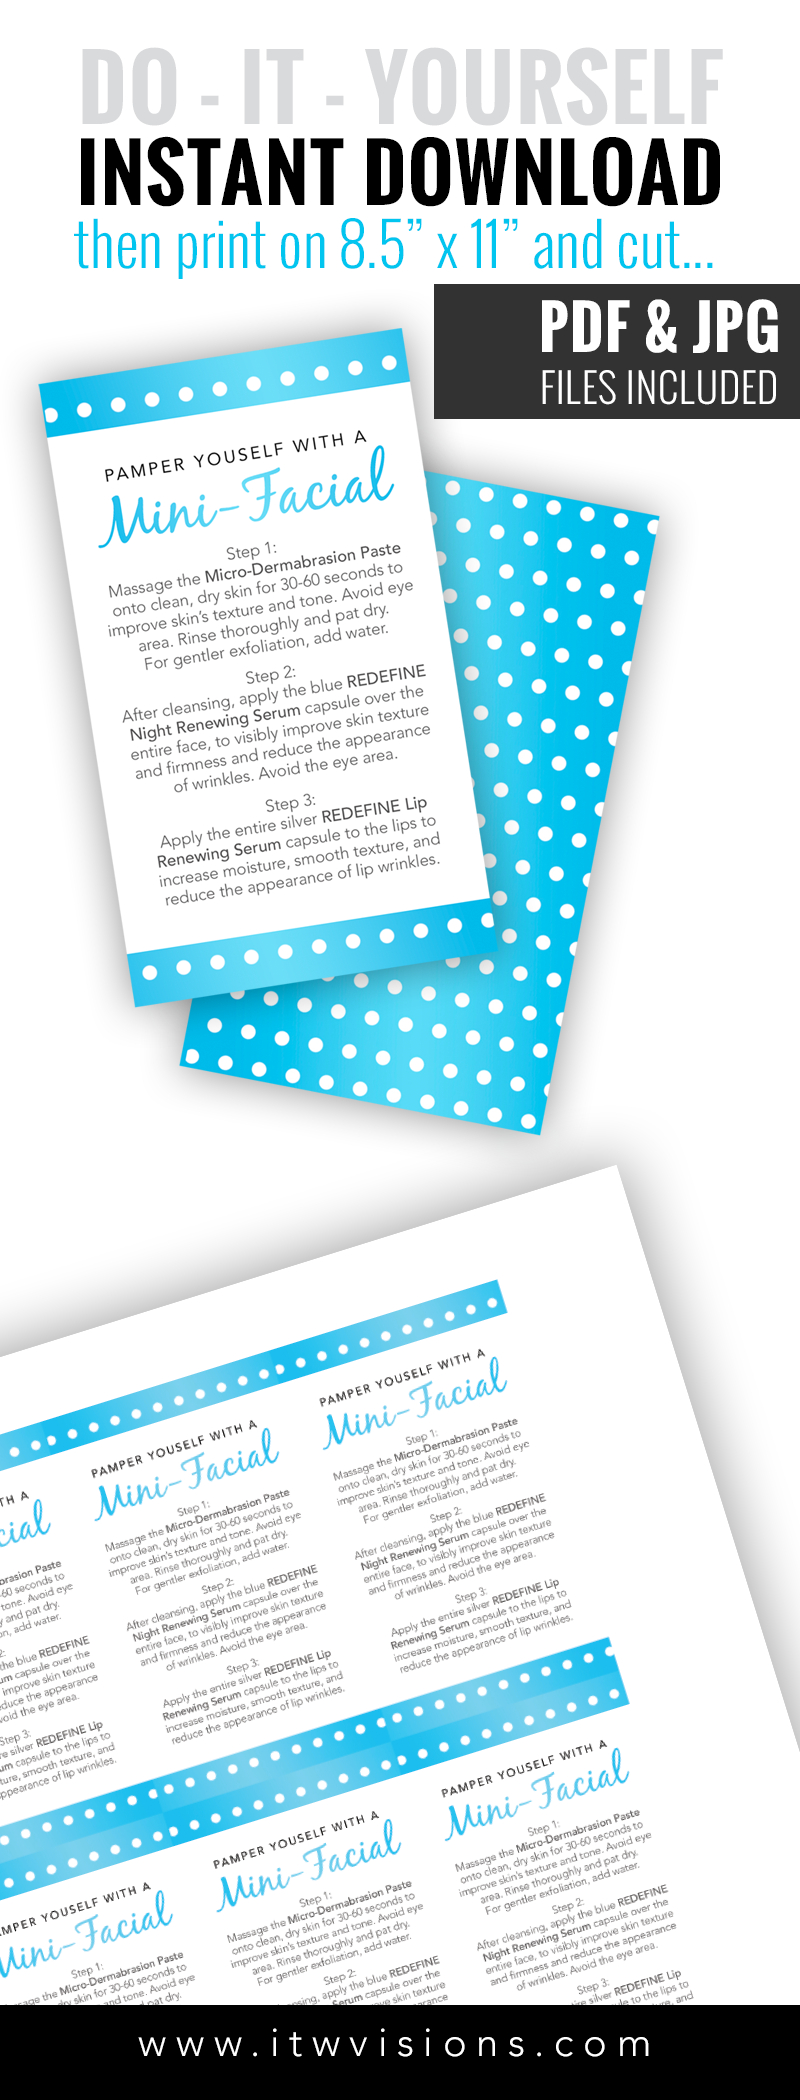 Editable Pdf - Mini-Facial Card - Blue Pearl - Instant Download - Rodan And Fields Mini Facial Instructions Printable Free